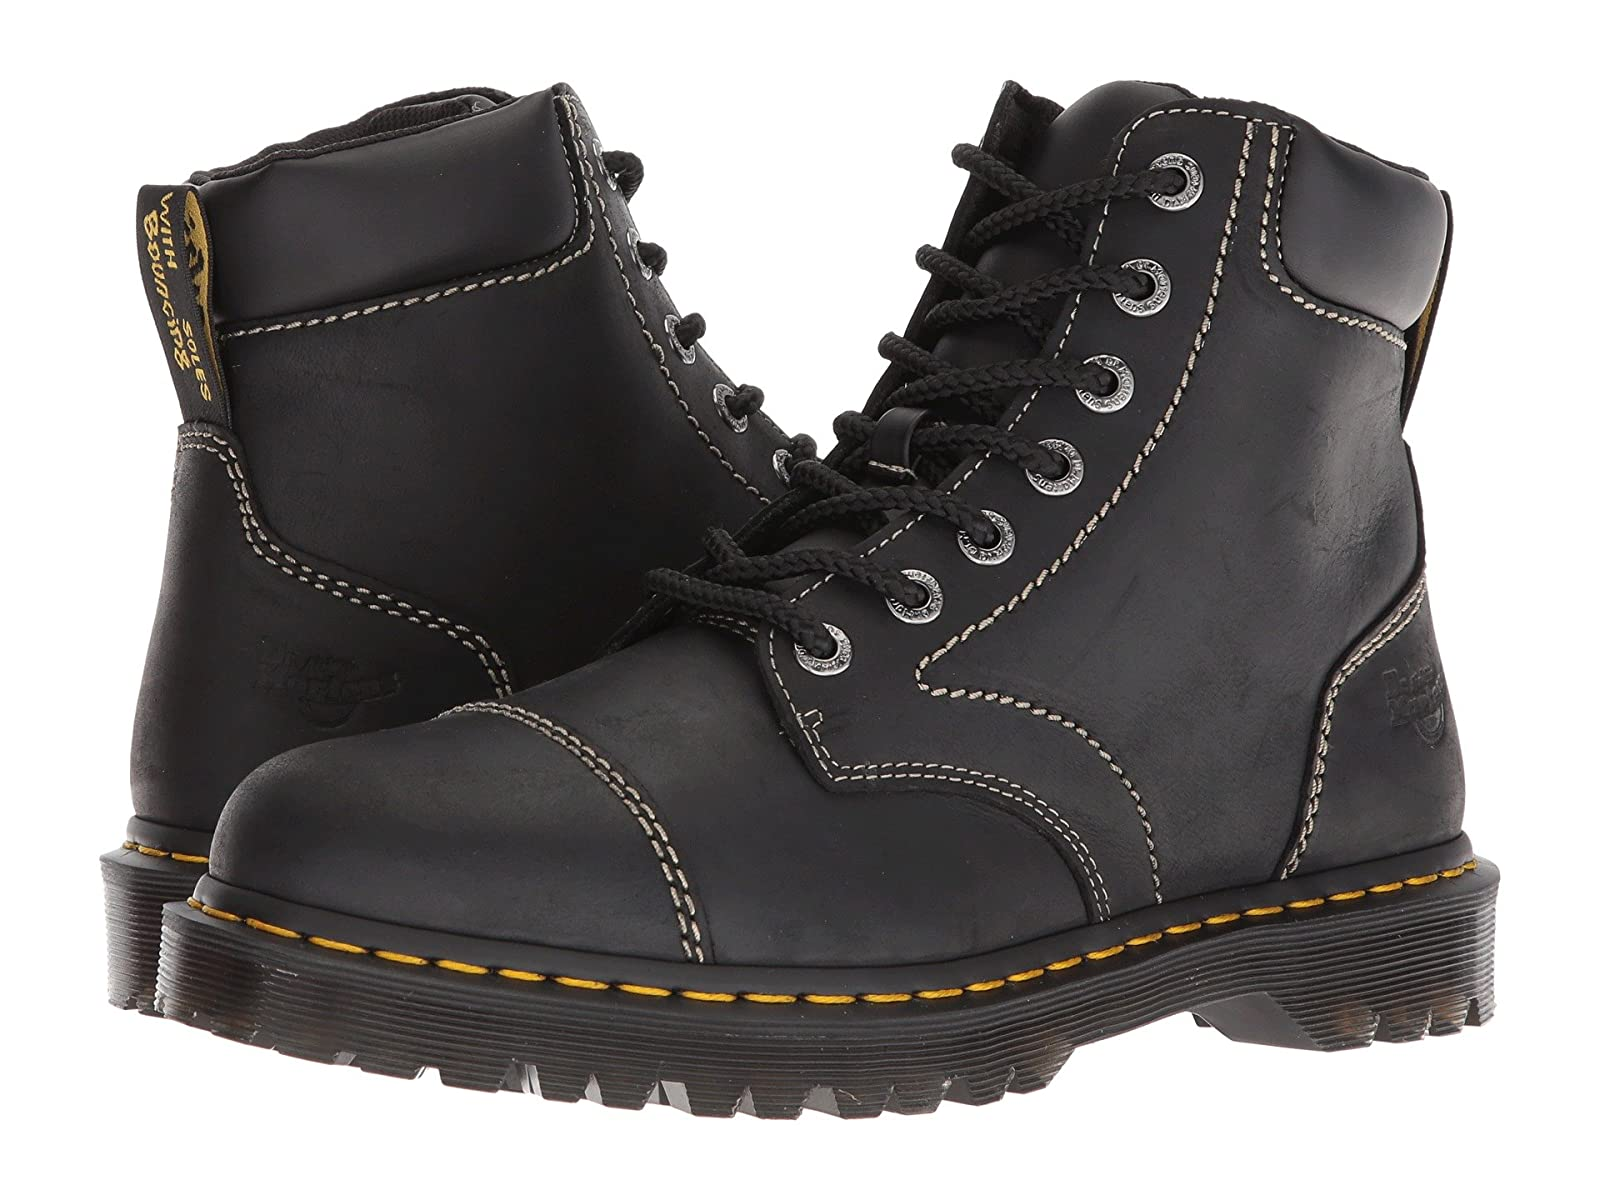 Dr. Martens RanchCheap and distinctive eye-catching shoes